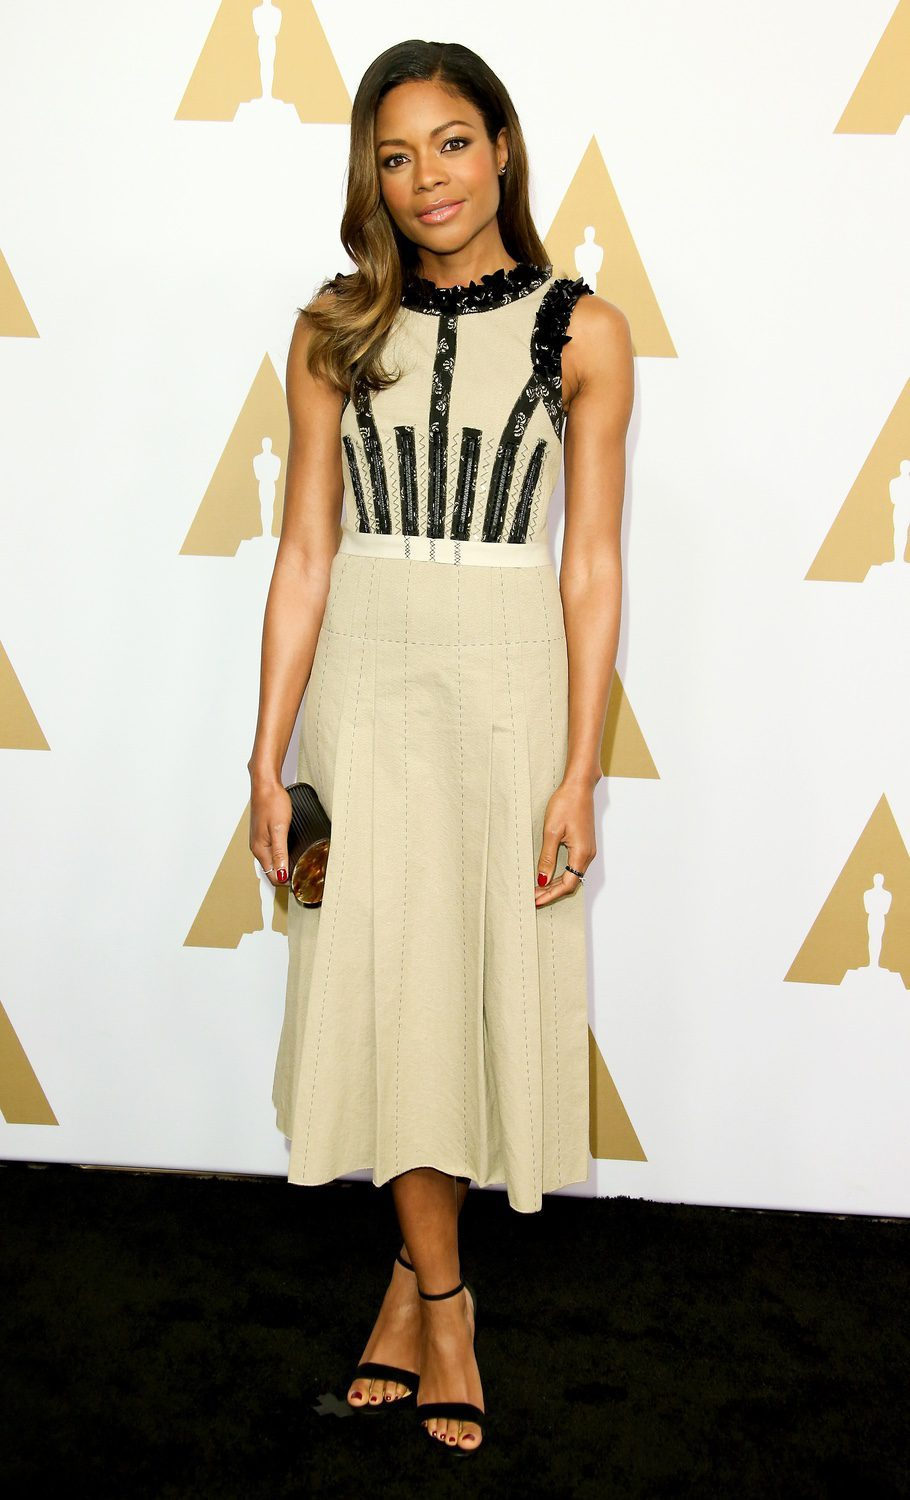 Naomie Harris at the 2017 Annual Academy Awards Nominee Luncheon